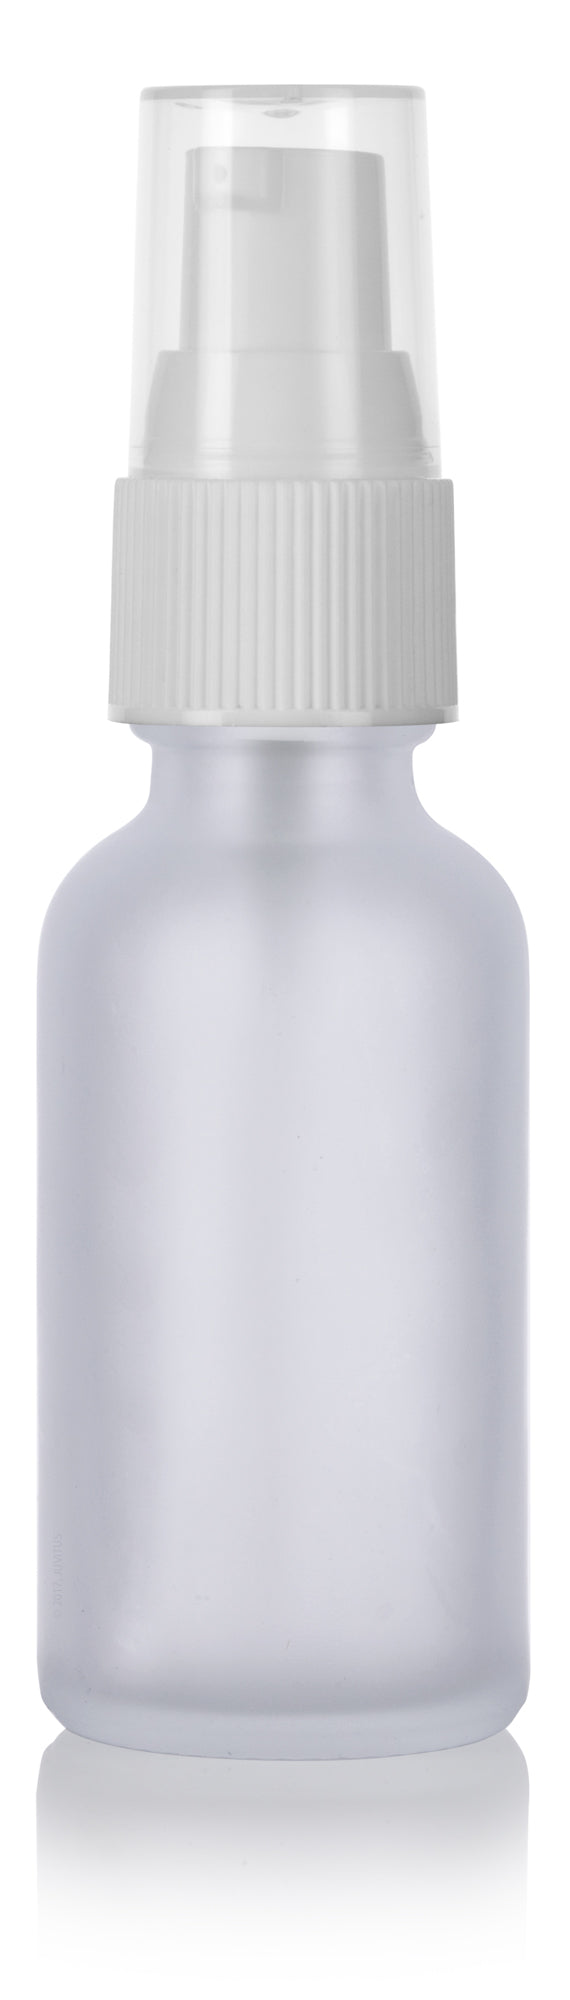 1 oz Frosted Clear Glass Boston Round White Treatment Pump Bottle + Funnel and Labels